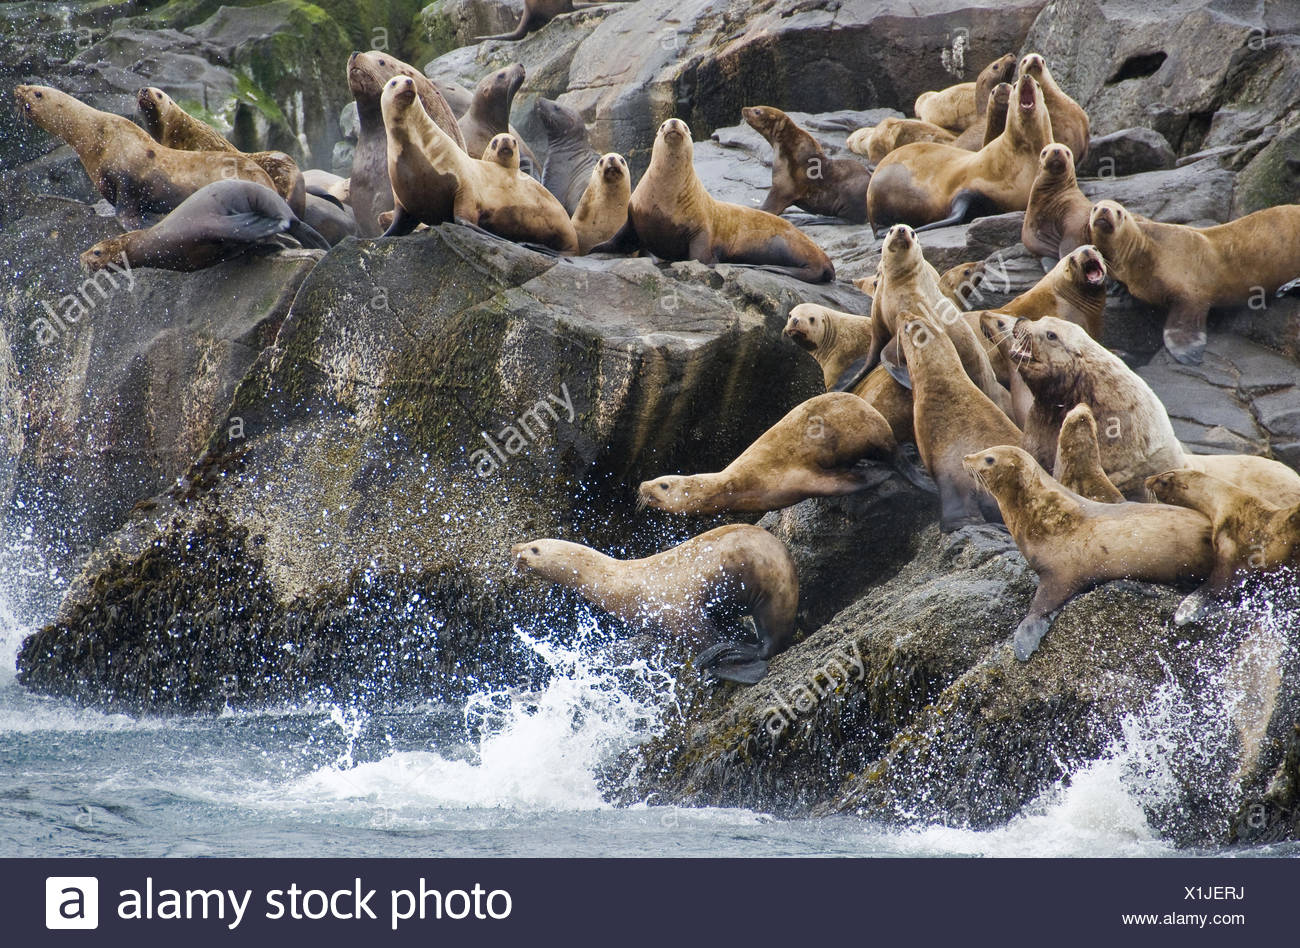 A group of Stellar sea lions congregate on a rocky outcrop. - Stock Image